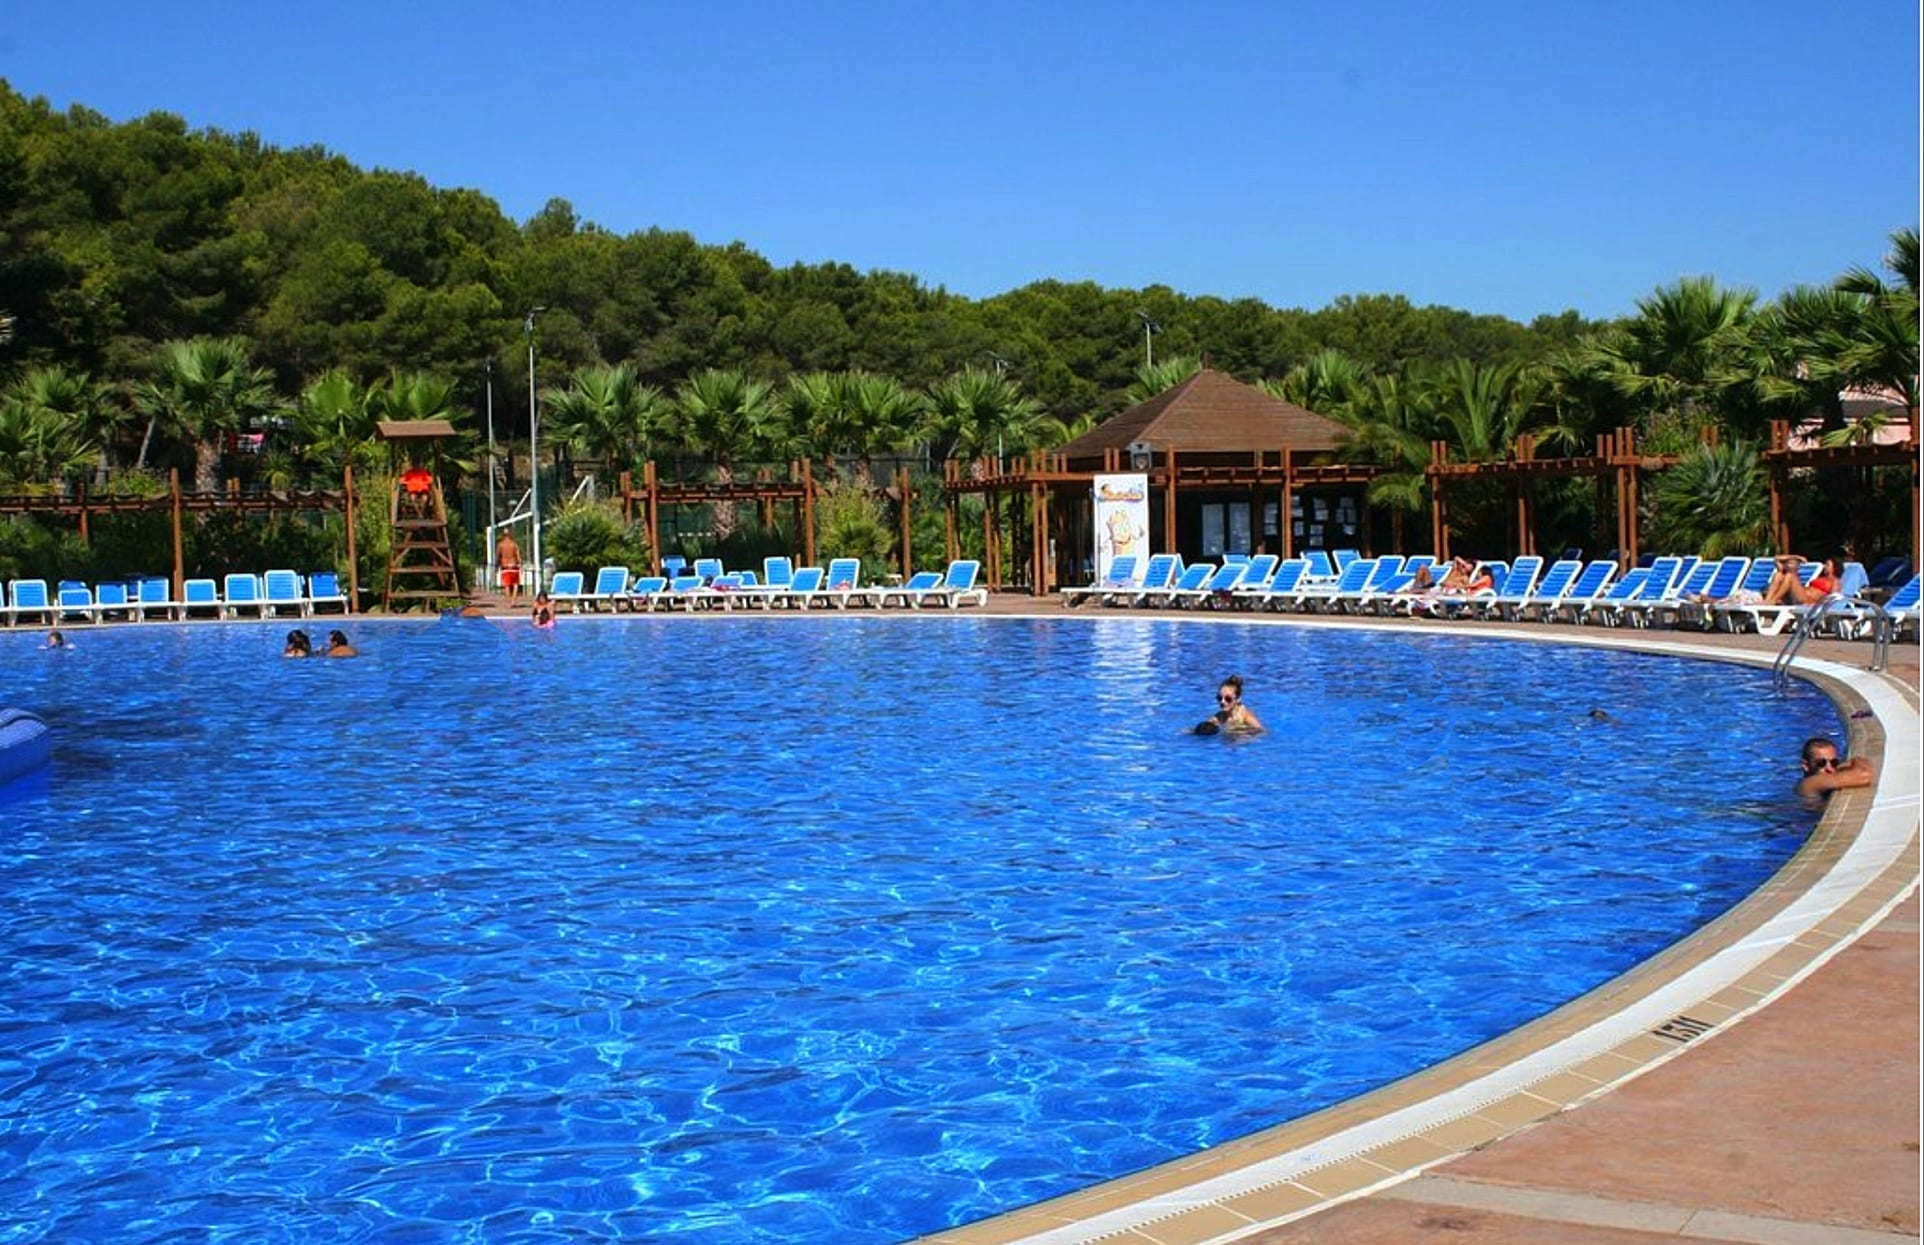 Torre-de-la-mar-swimming-pool